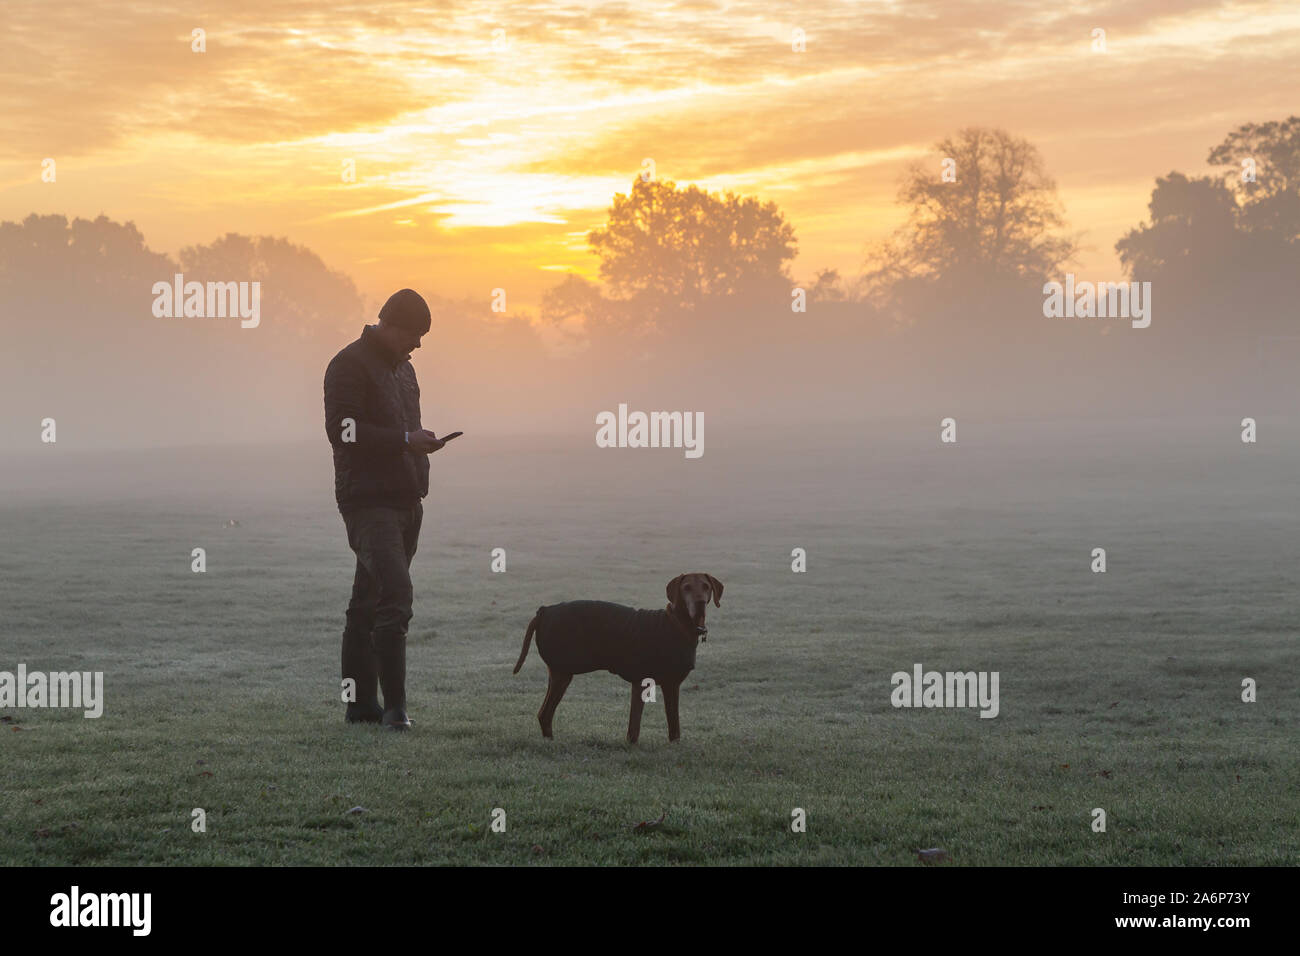 Northampton, UK. 28th Oct, 2019. UK Weather, A man stood using his mobile phone while walking his Hungarian Vizla pets with a spectacular dawn sky behind him over Abington Park a ground mist and a light frost promising another nice day, Credit: Keith J Smith./Alamy Live News Stock Photo